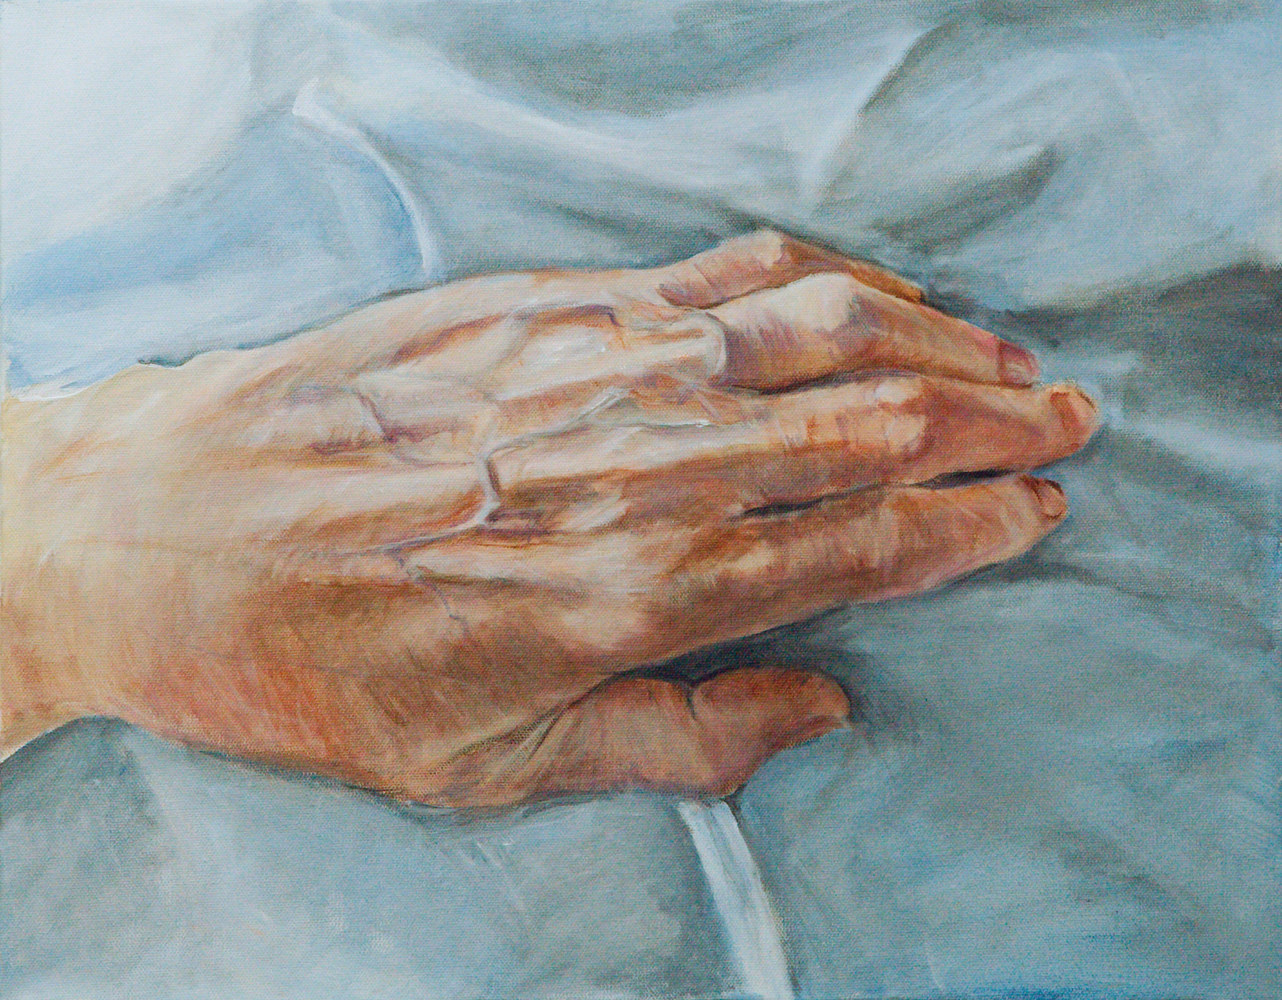 Acrylic painting handscape by Marc Brisson